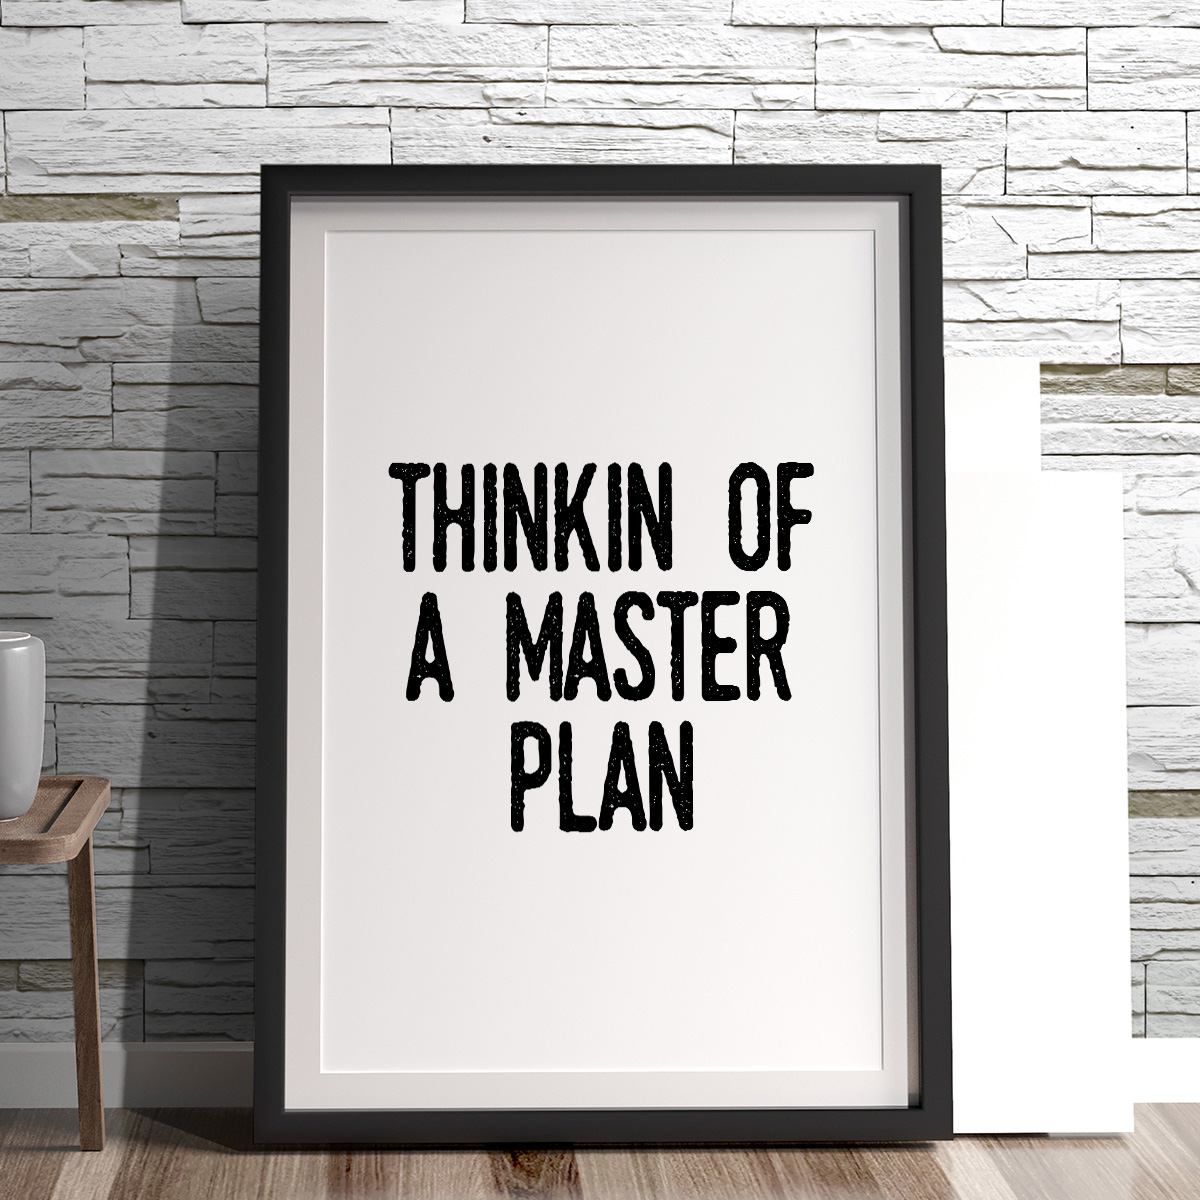 Thinking Of A Master Plan Poster by MottosPrint Design